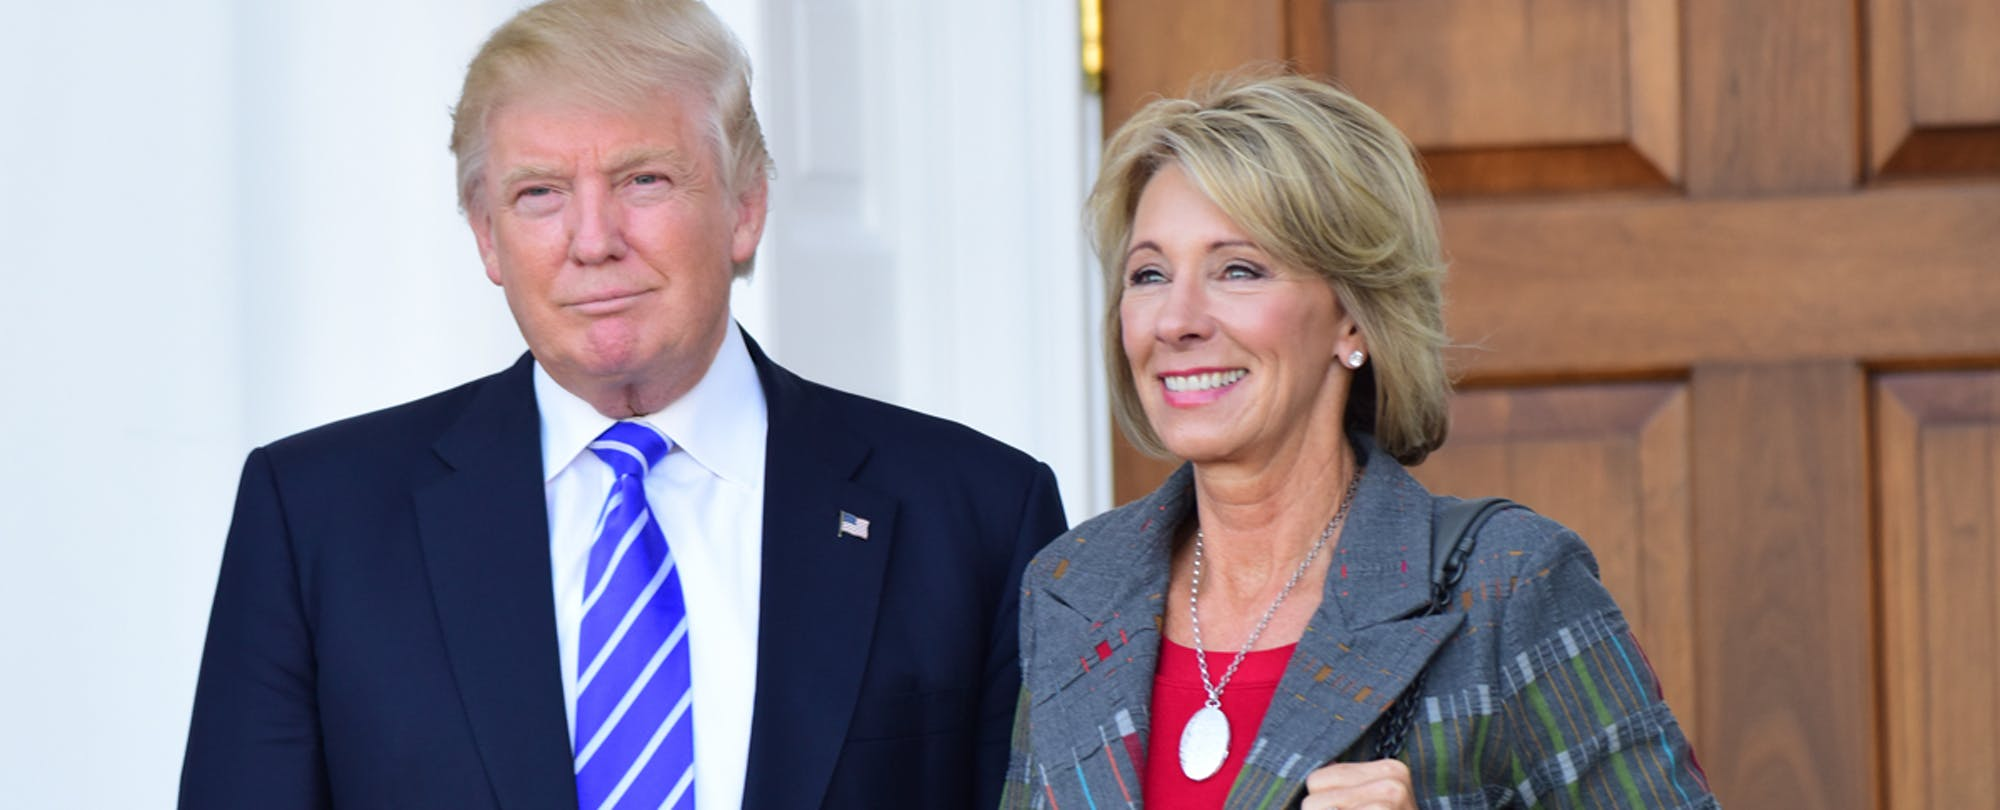 An Open Letter to Appointed Secretary of Education, Betsy DeVos